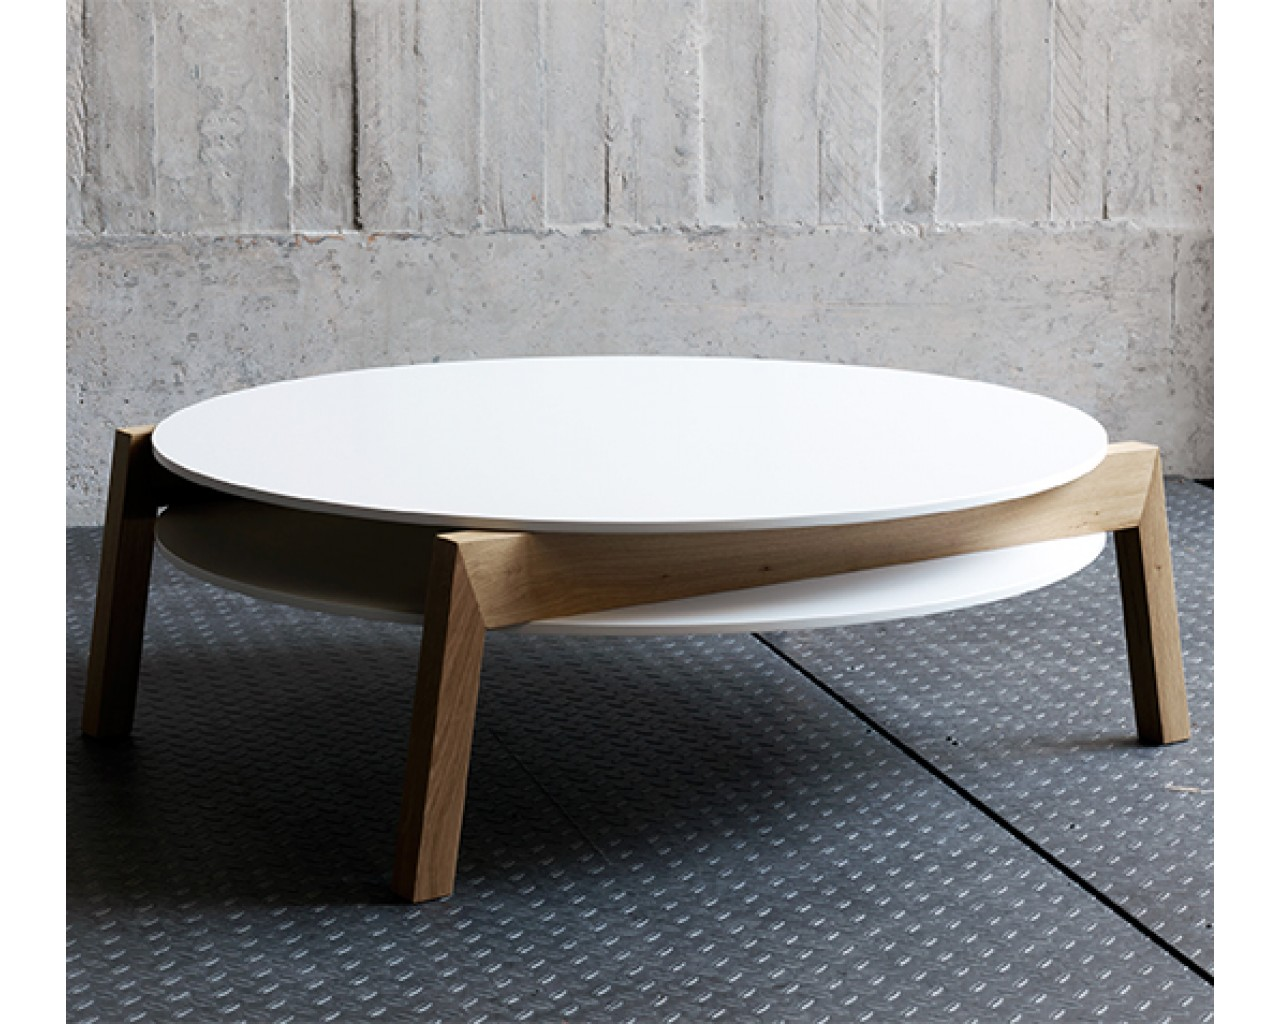 ROUND COFEE TABLE Τραπέζια σαλονιού